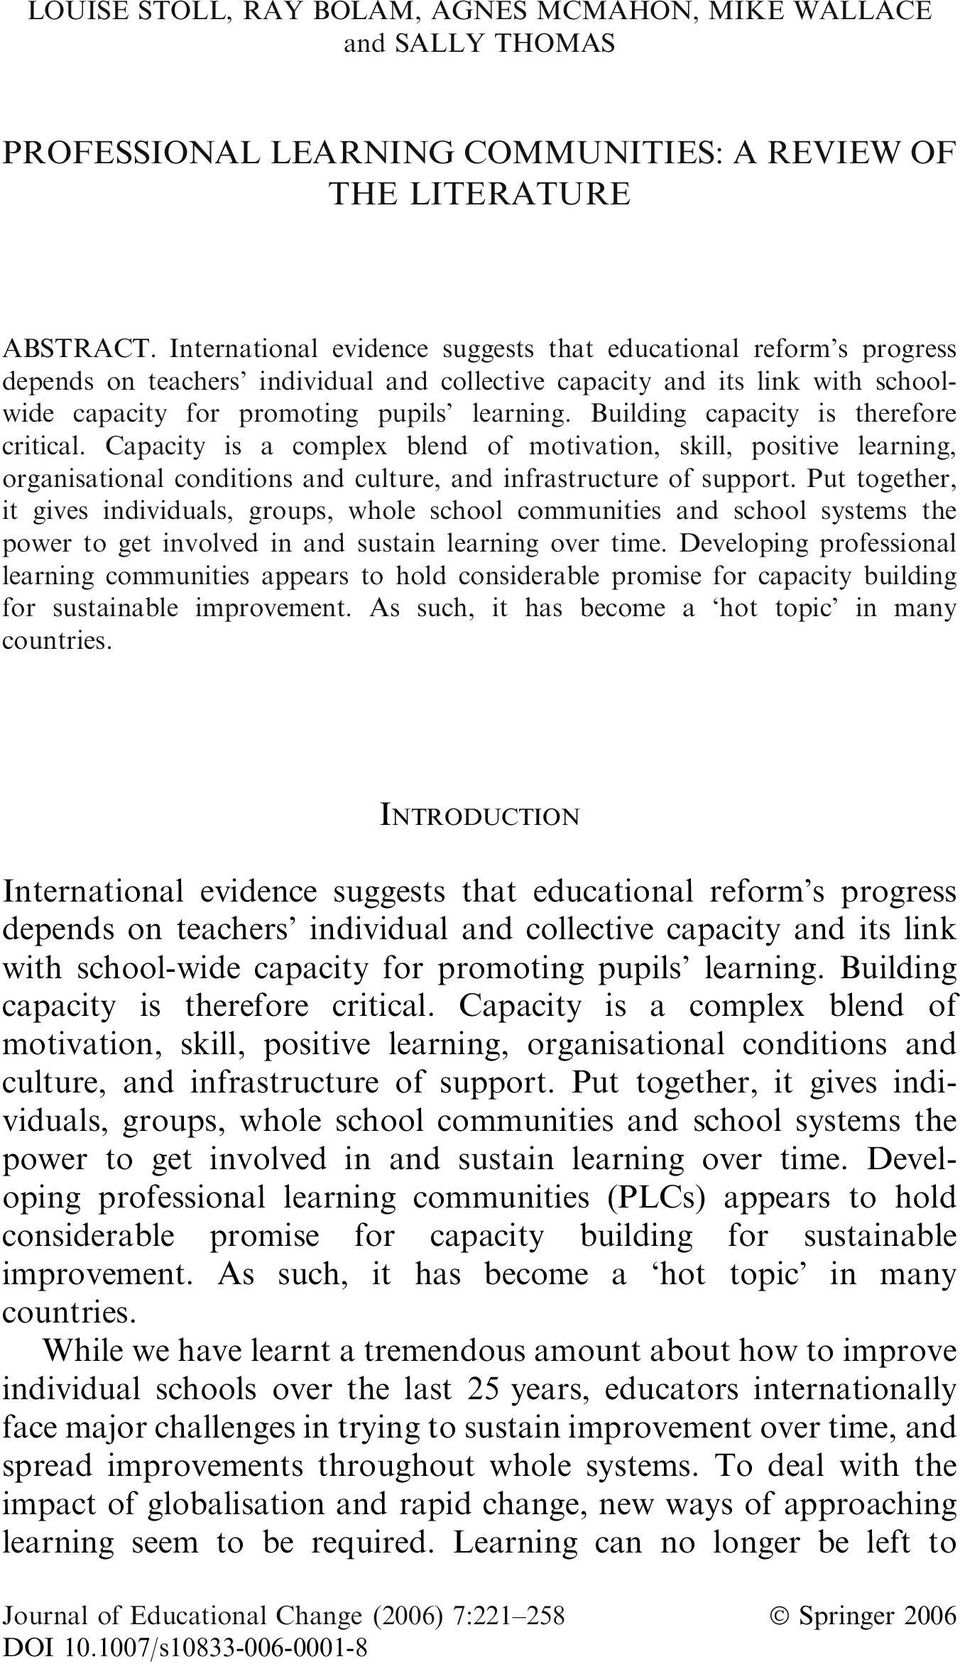 Building capacity is therefore critical. Capacity is a complex blend of motivation, skill, positive learning, organisational conditions and culture, and infrastructure of support.